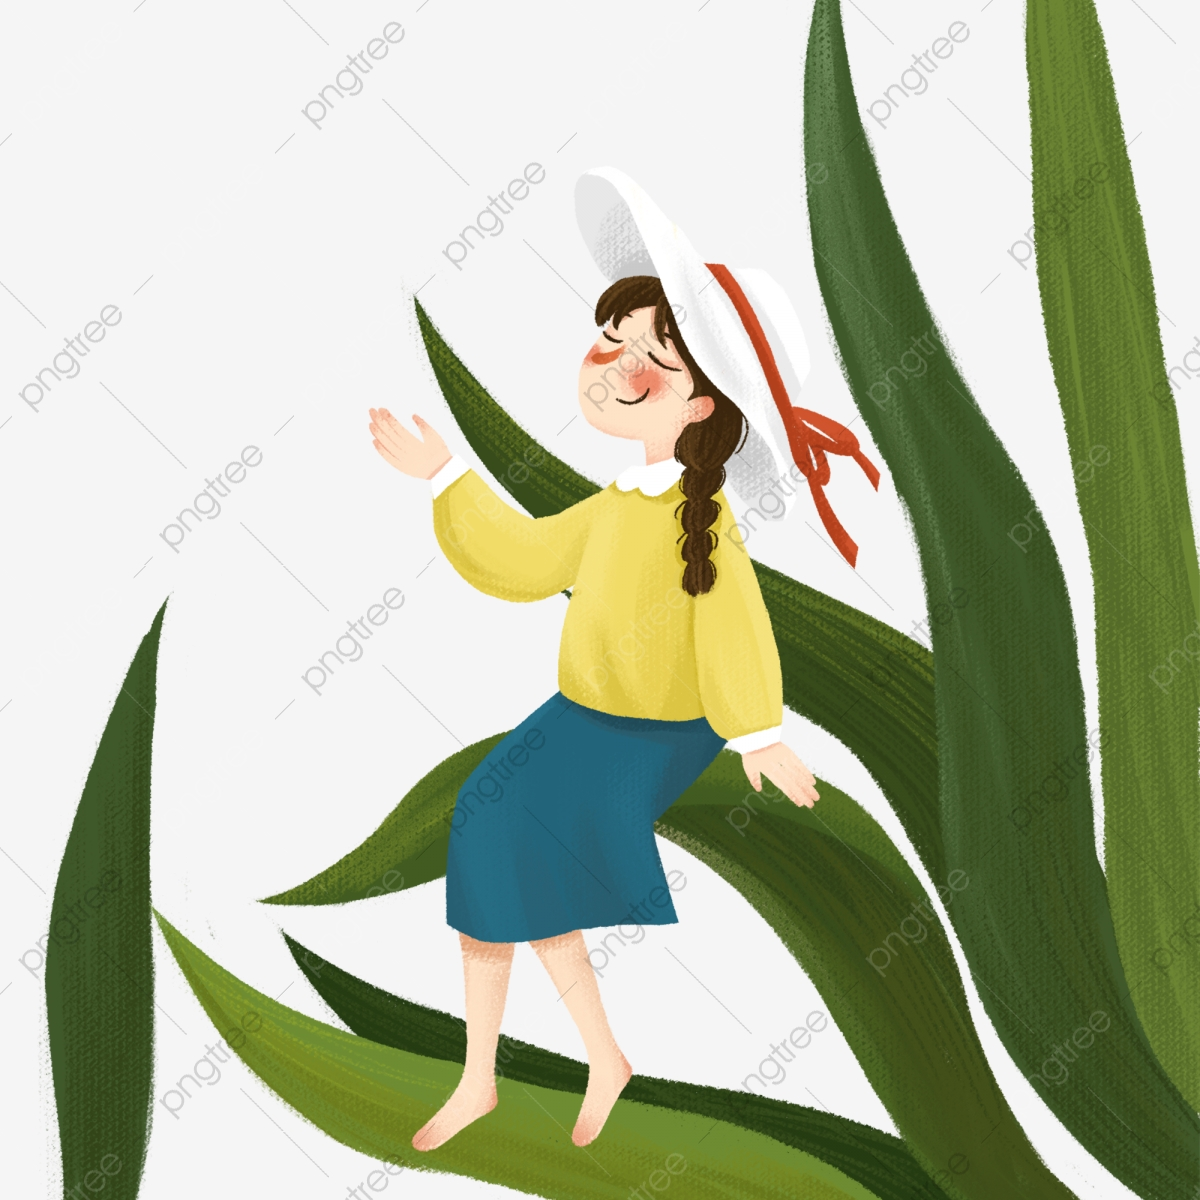 Little Girl Sitting On The Leaf Above Free Illustration Cartoon Character Anime Character Tree Branch Png Transparent Clipart Image And Psd File For Free Download Tree house free vector cartoon illustration. https pngtree com freepng little girl sitting on the leaf above free illustration 4632077 html